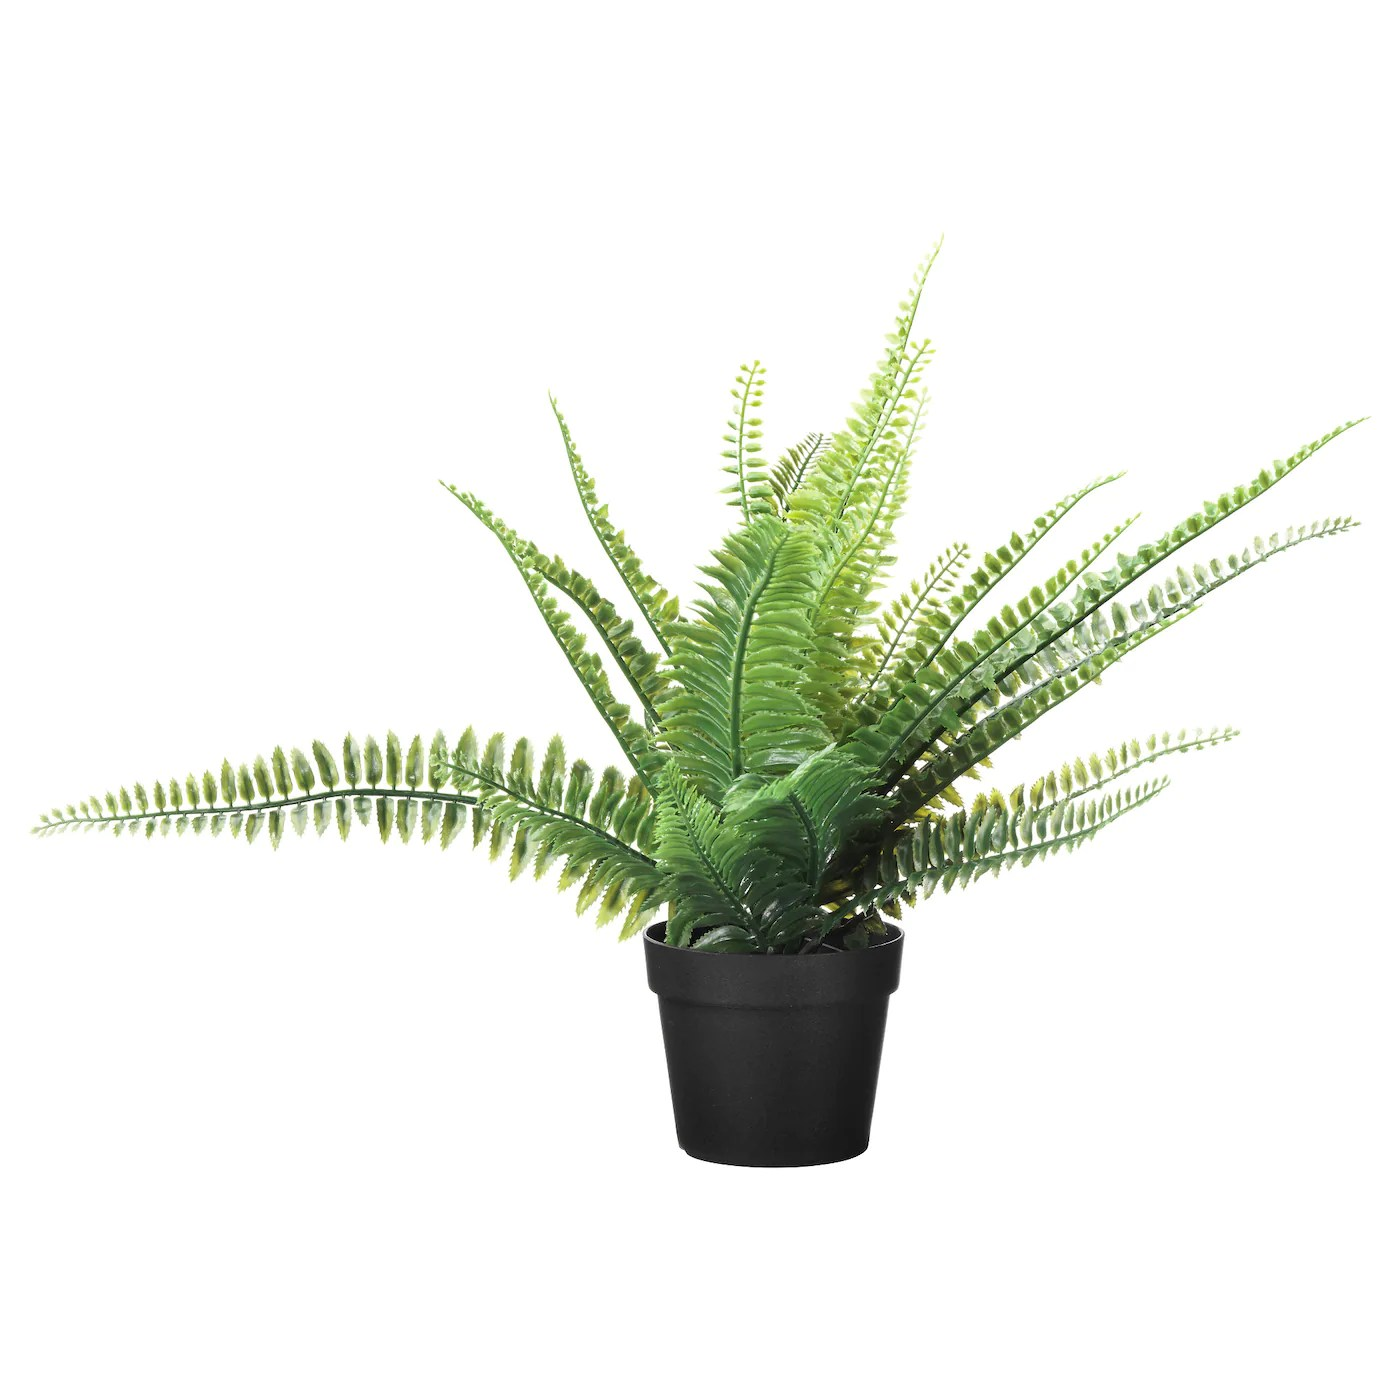 Ikea Palm Tree Artificial Flowers Plants Ikea Ireland Dublin